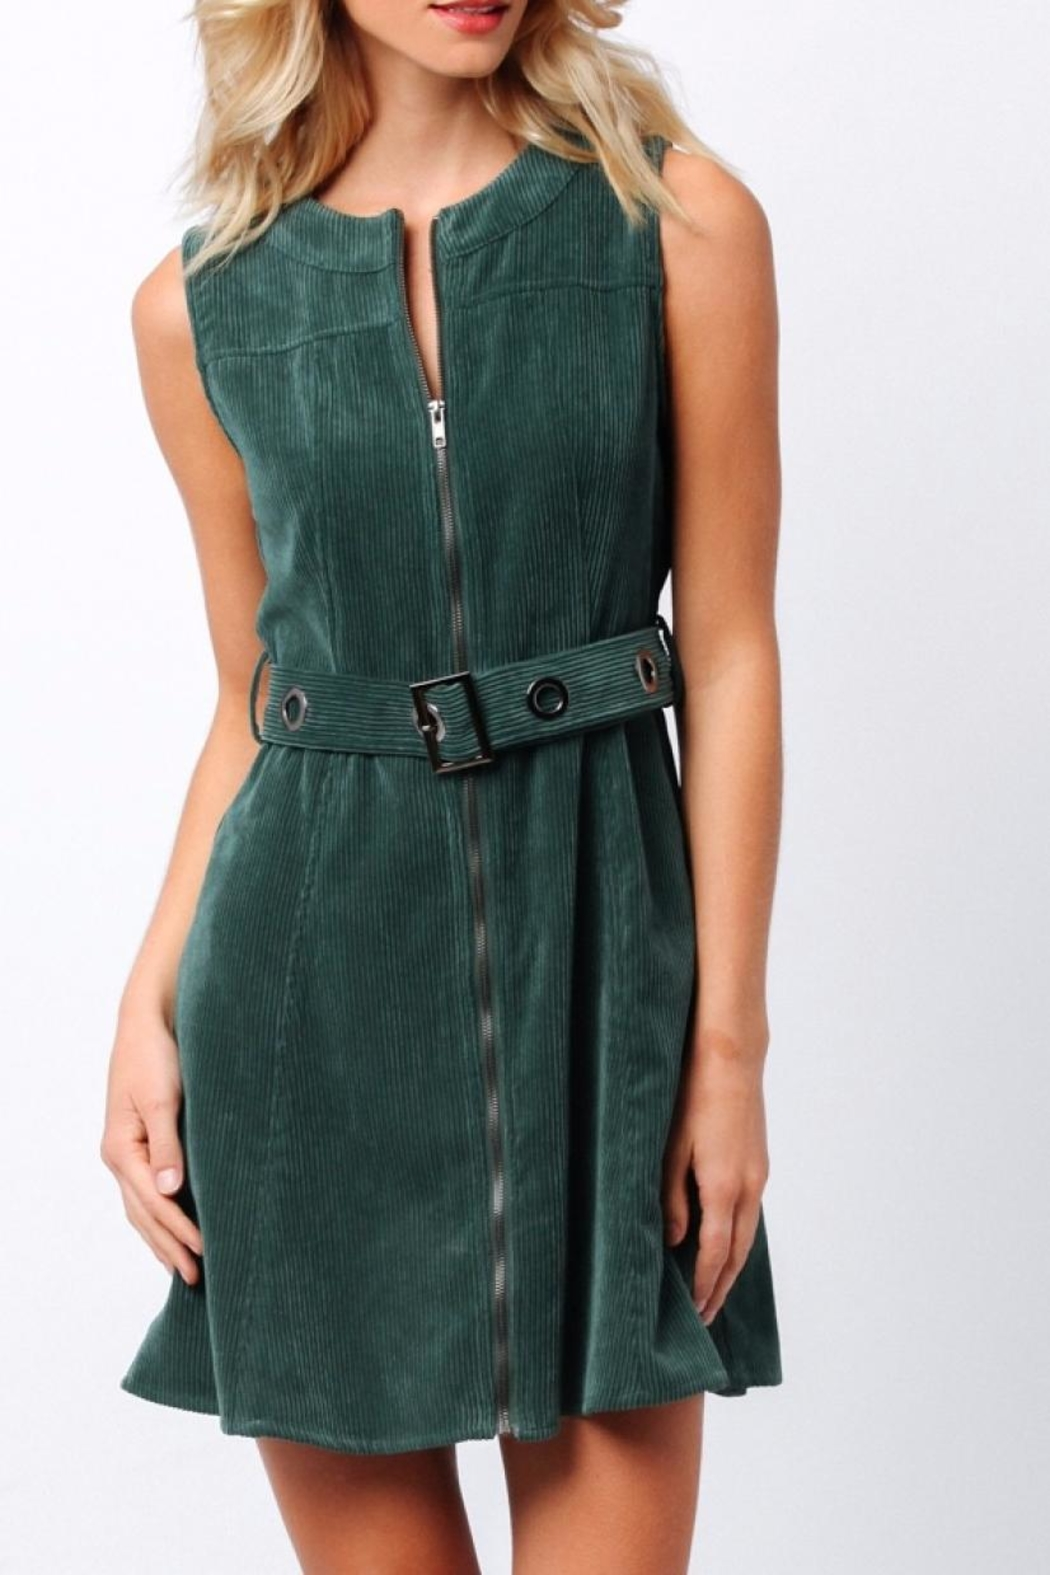 Paper Crane Green Corduroy Dress - Main Image